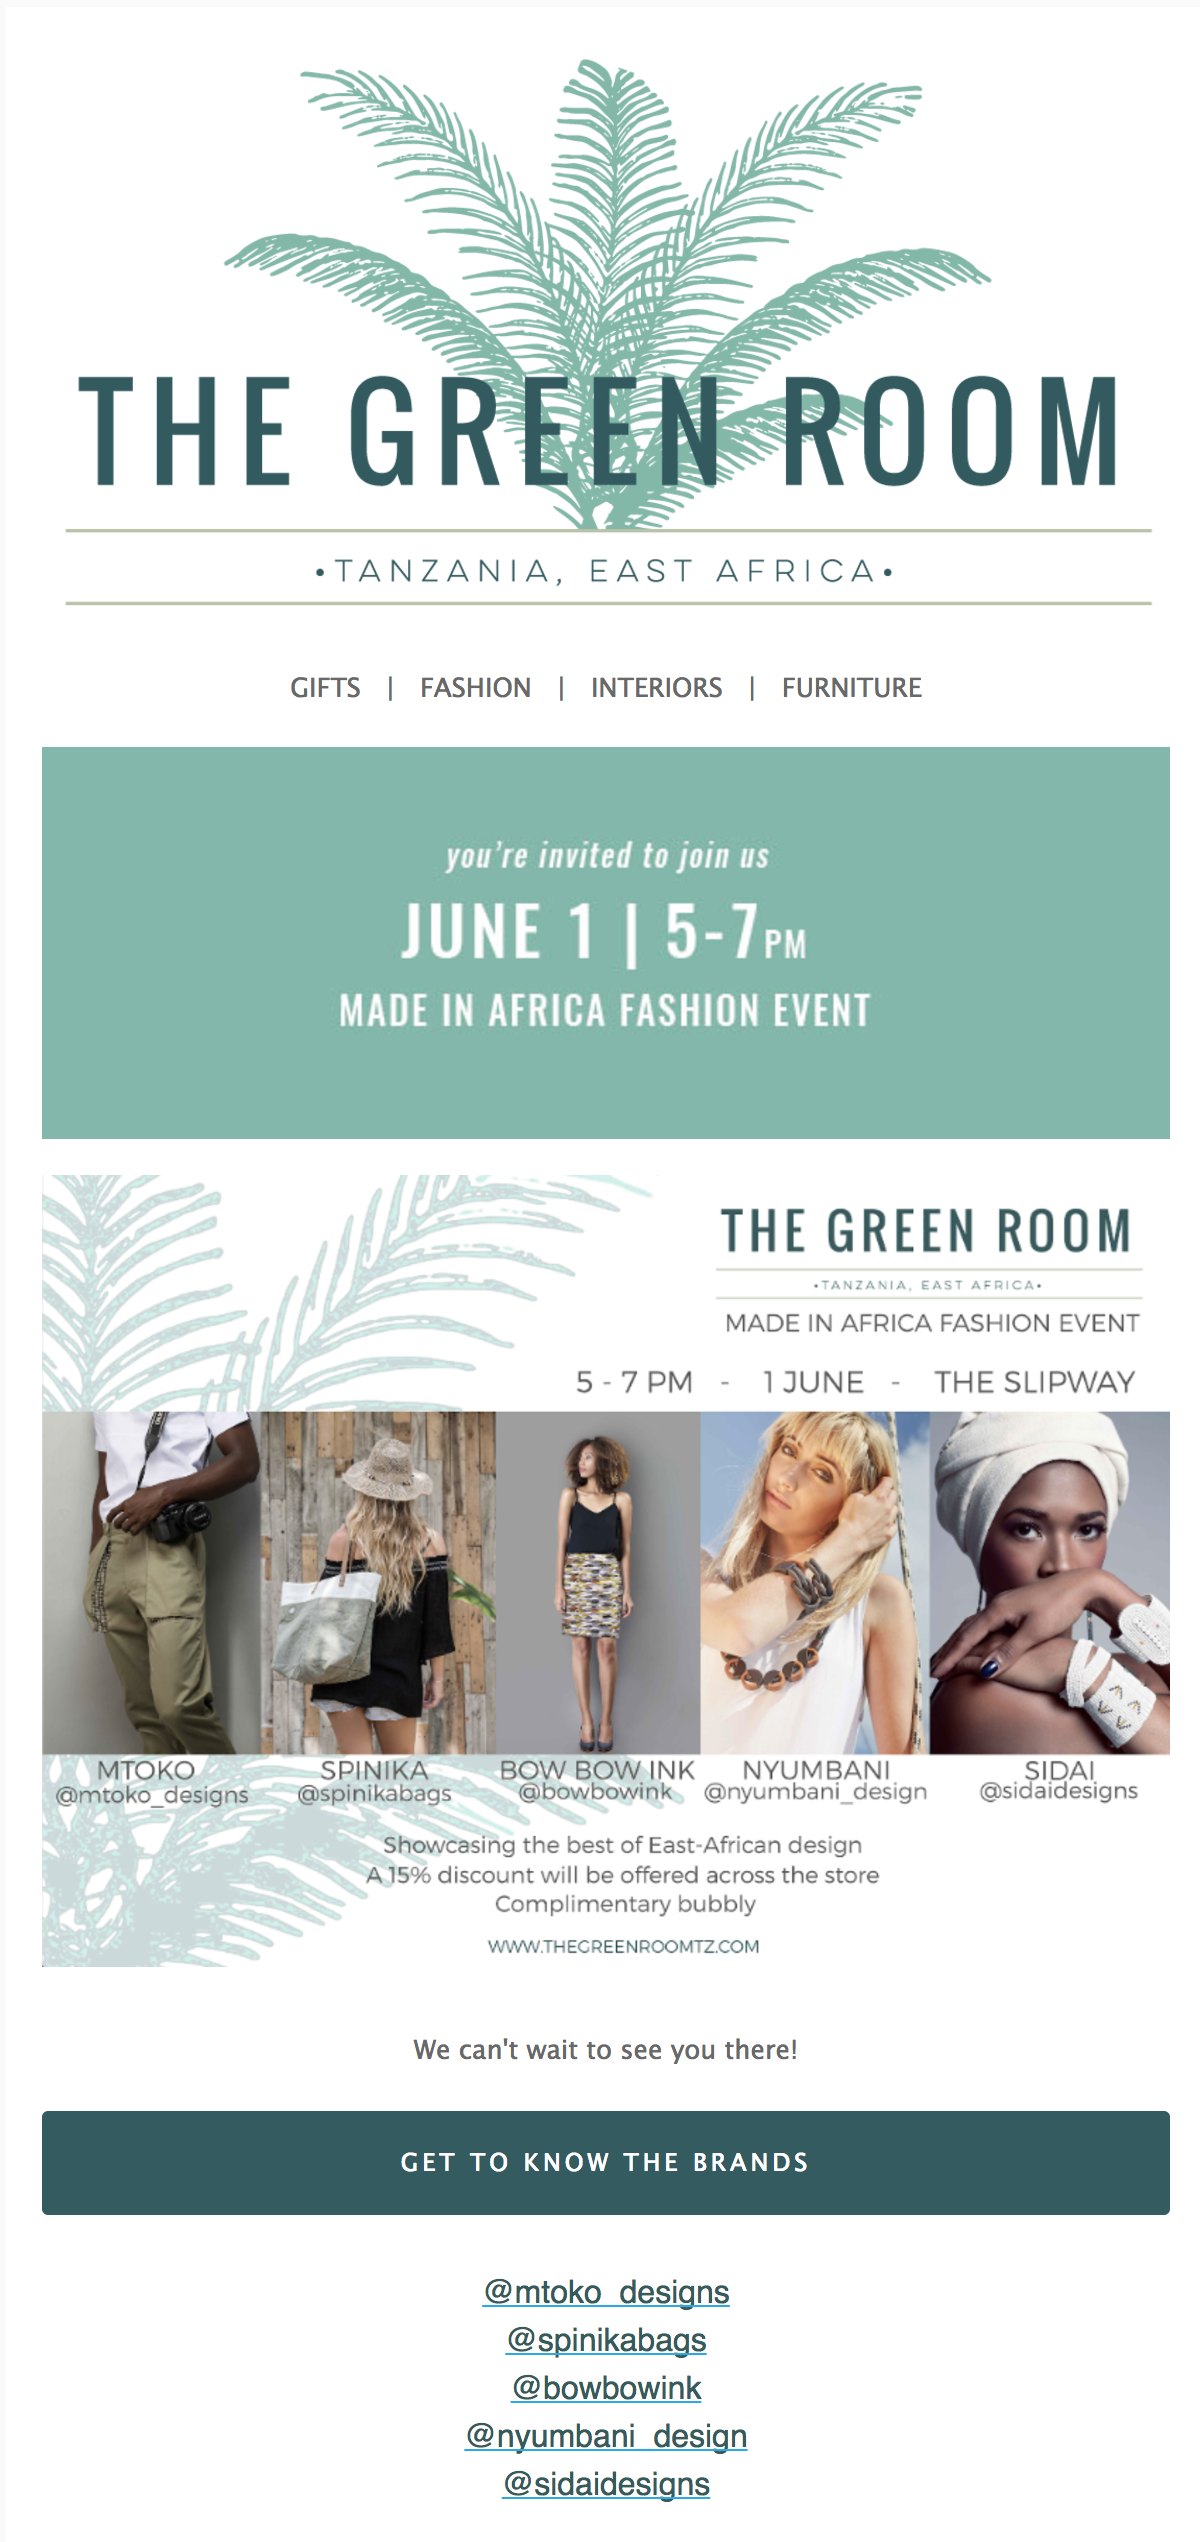 made in afrian fashion event_the green room